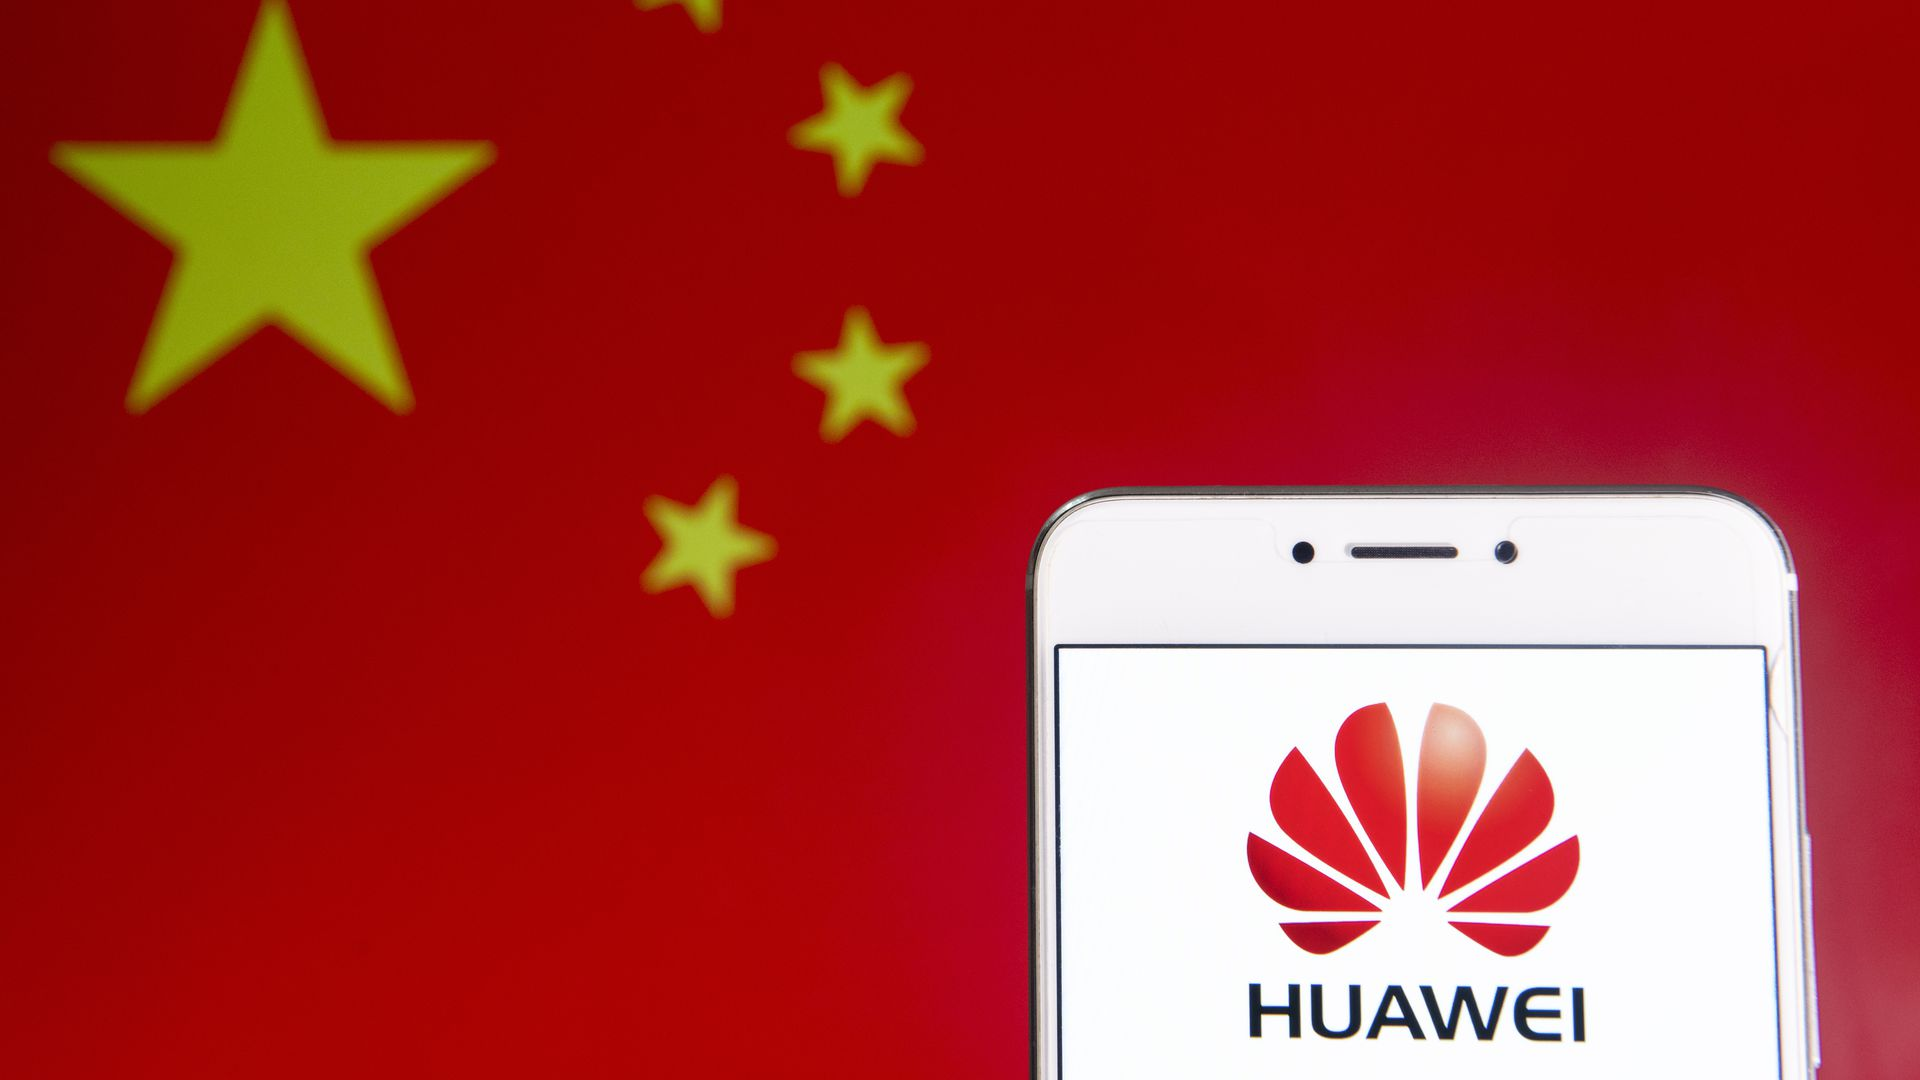 Huawei logo on a phone screen in front of the Chinese flag